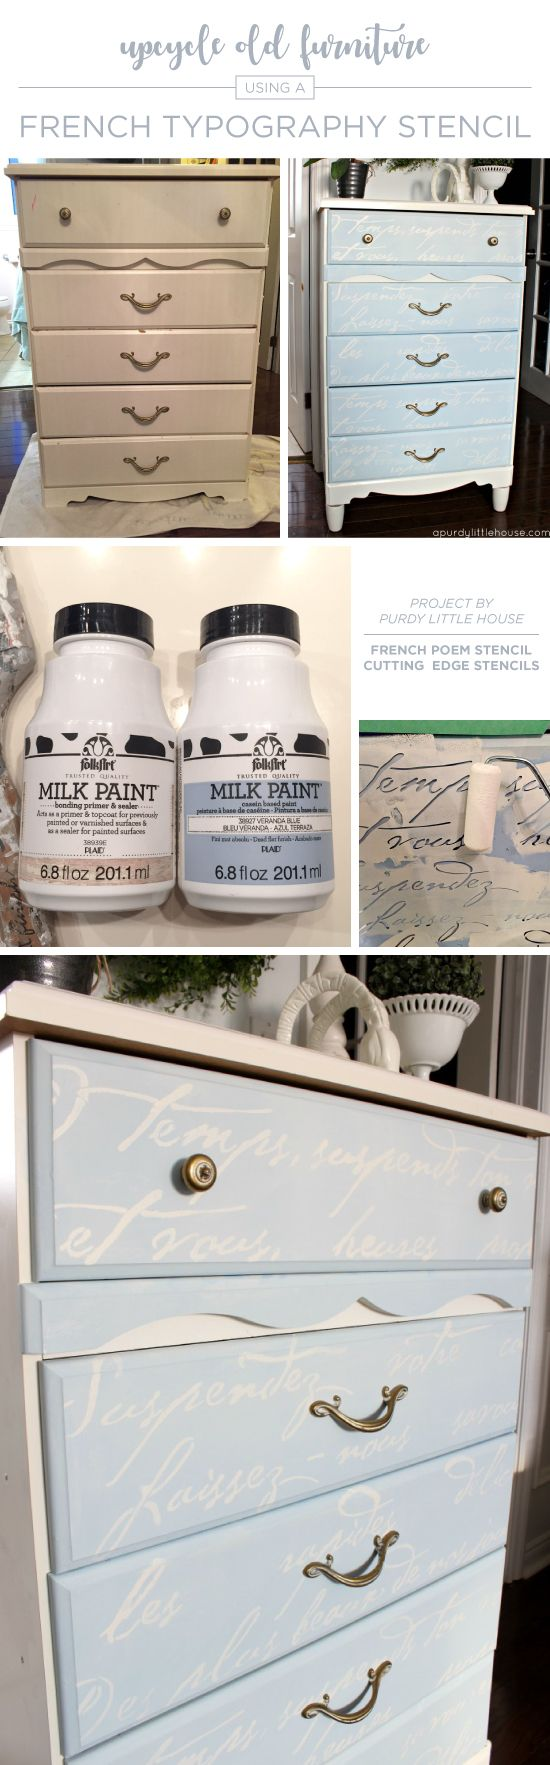 2850 best mobiliario pintado painting forniture images on cutting edge stencils shares a dresser makeover using the french poem allover stencil a typography amipublicfo Gallery